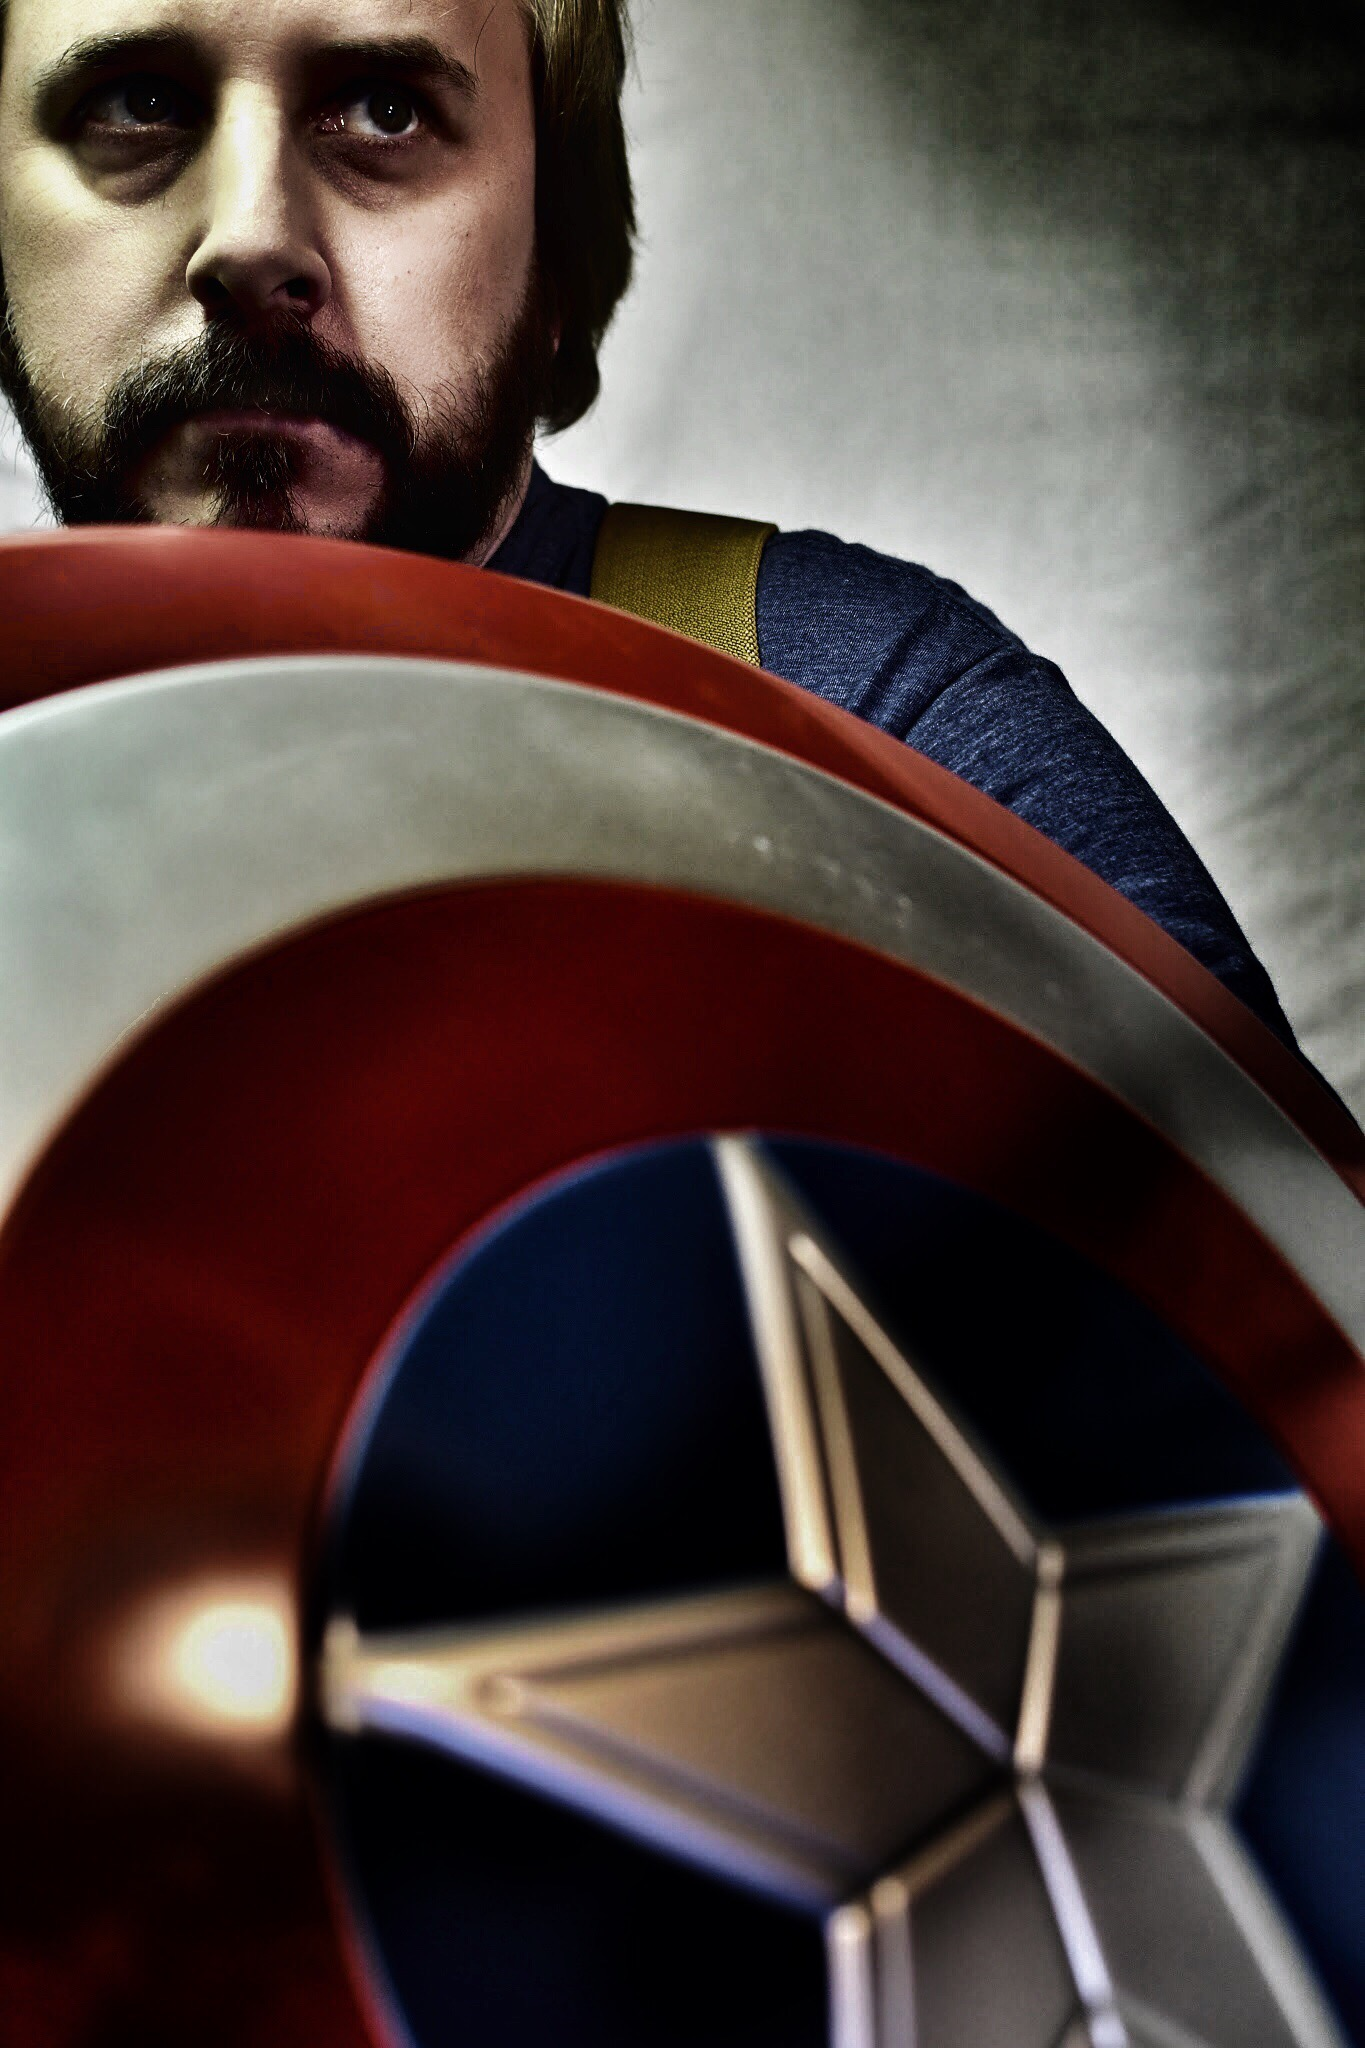 shaving style thursday: exclusive discount and avengers sneak preview.